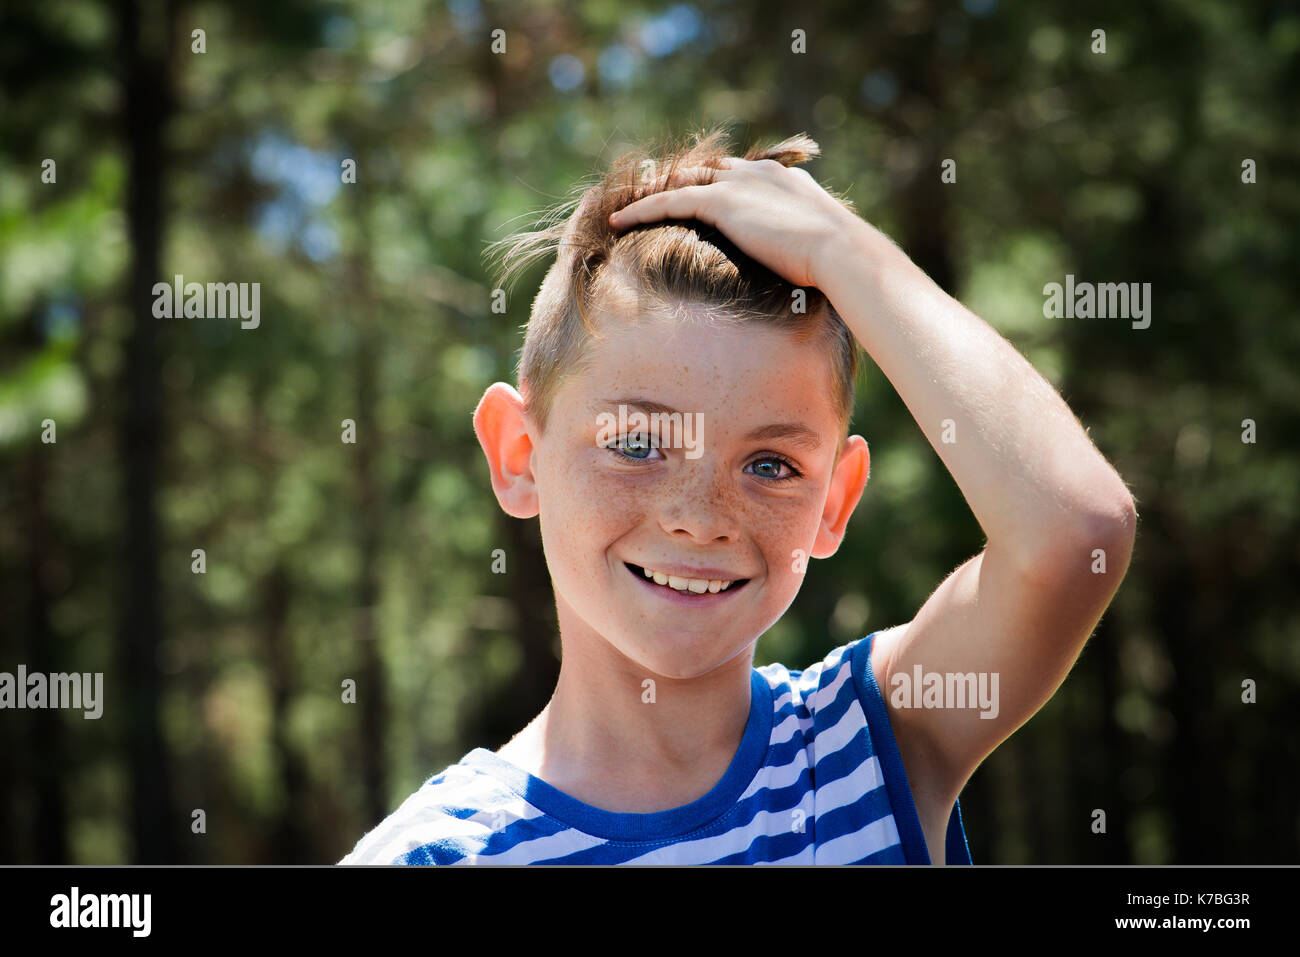 Preteen boy, portrait - Stock Image